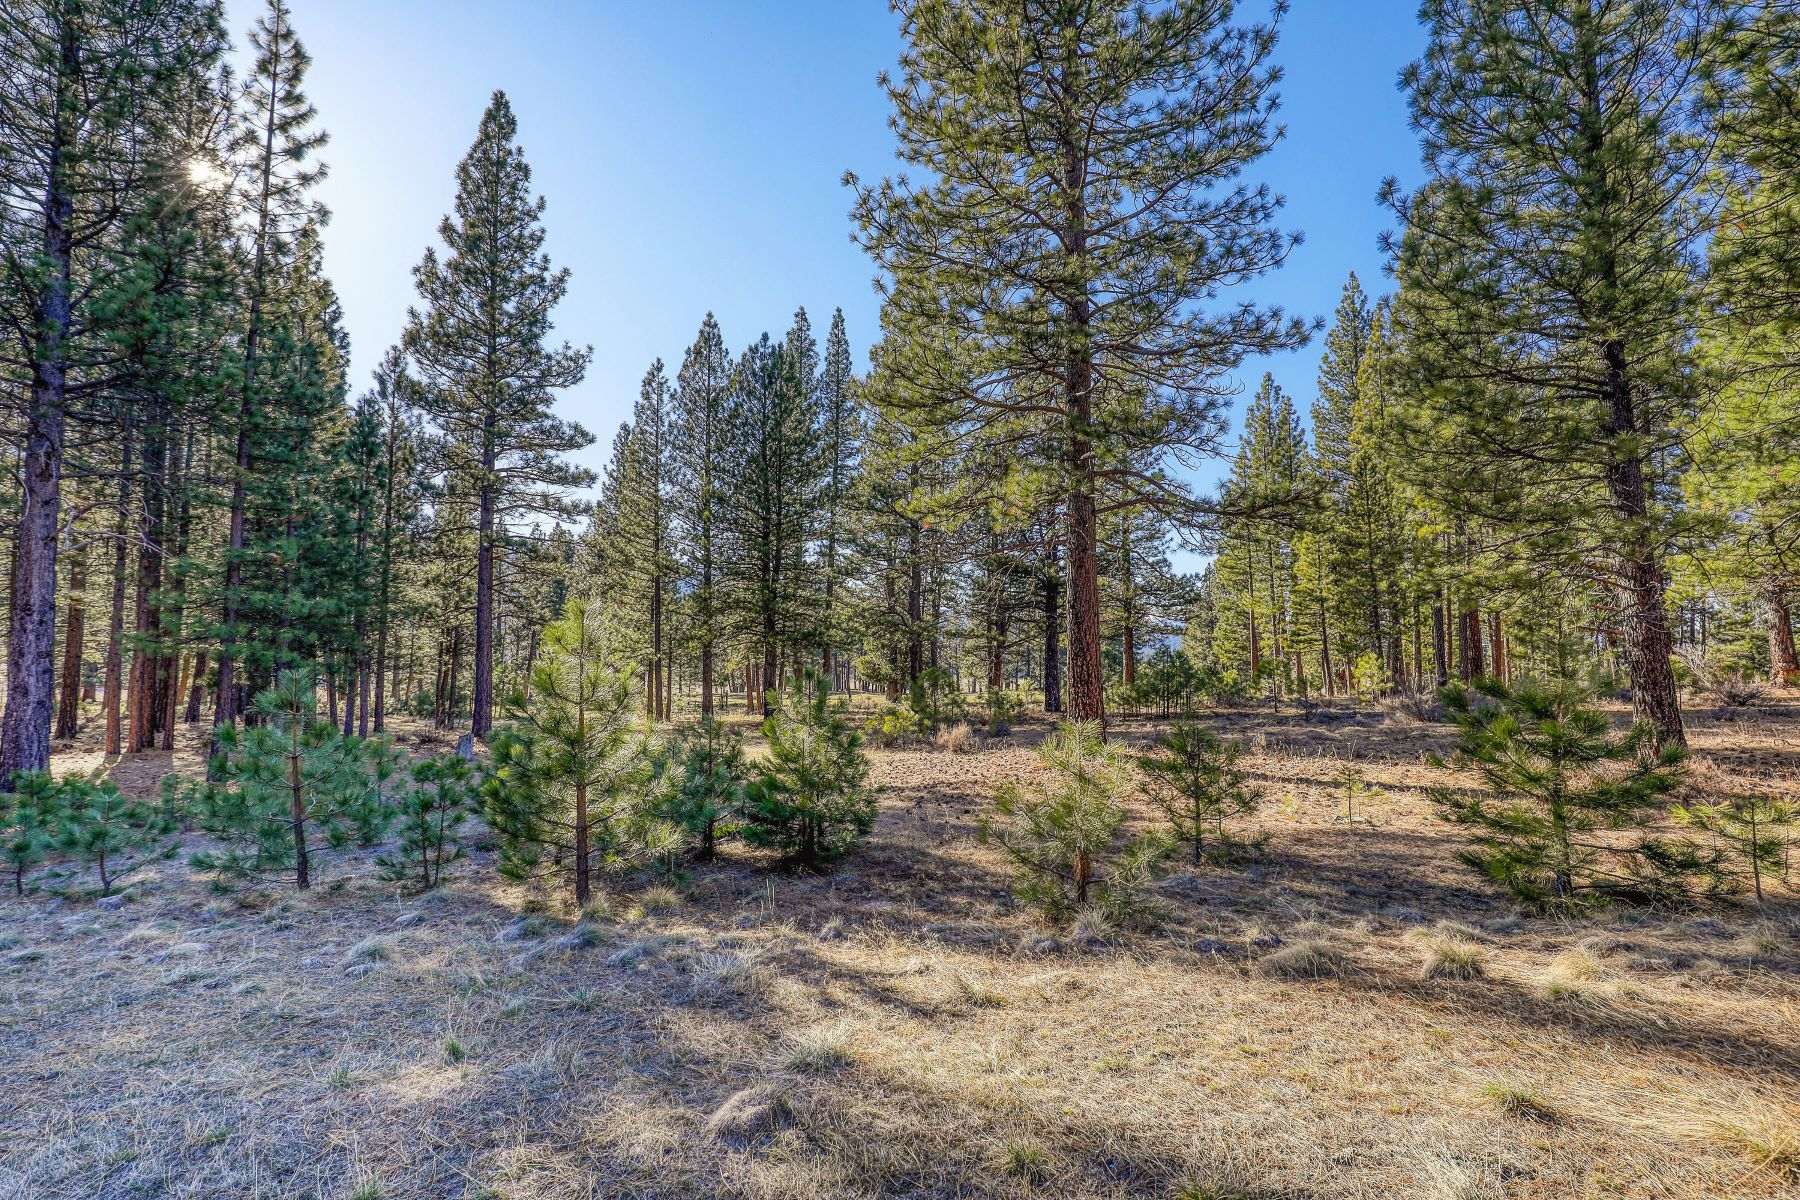 Additional photo for property listing at 709 Redtail Loop Clio California 96106 709 Redtail Loop Clio, California 96106 United States